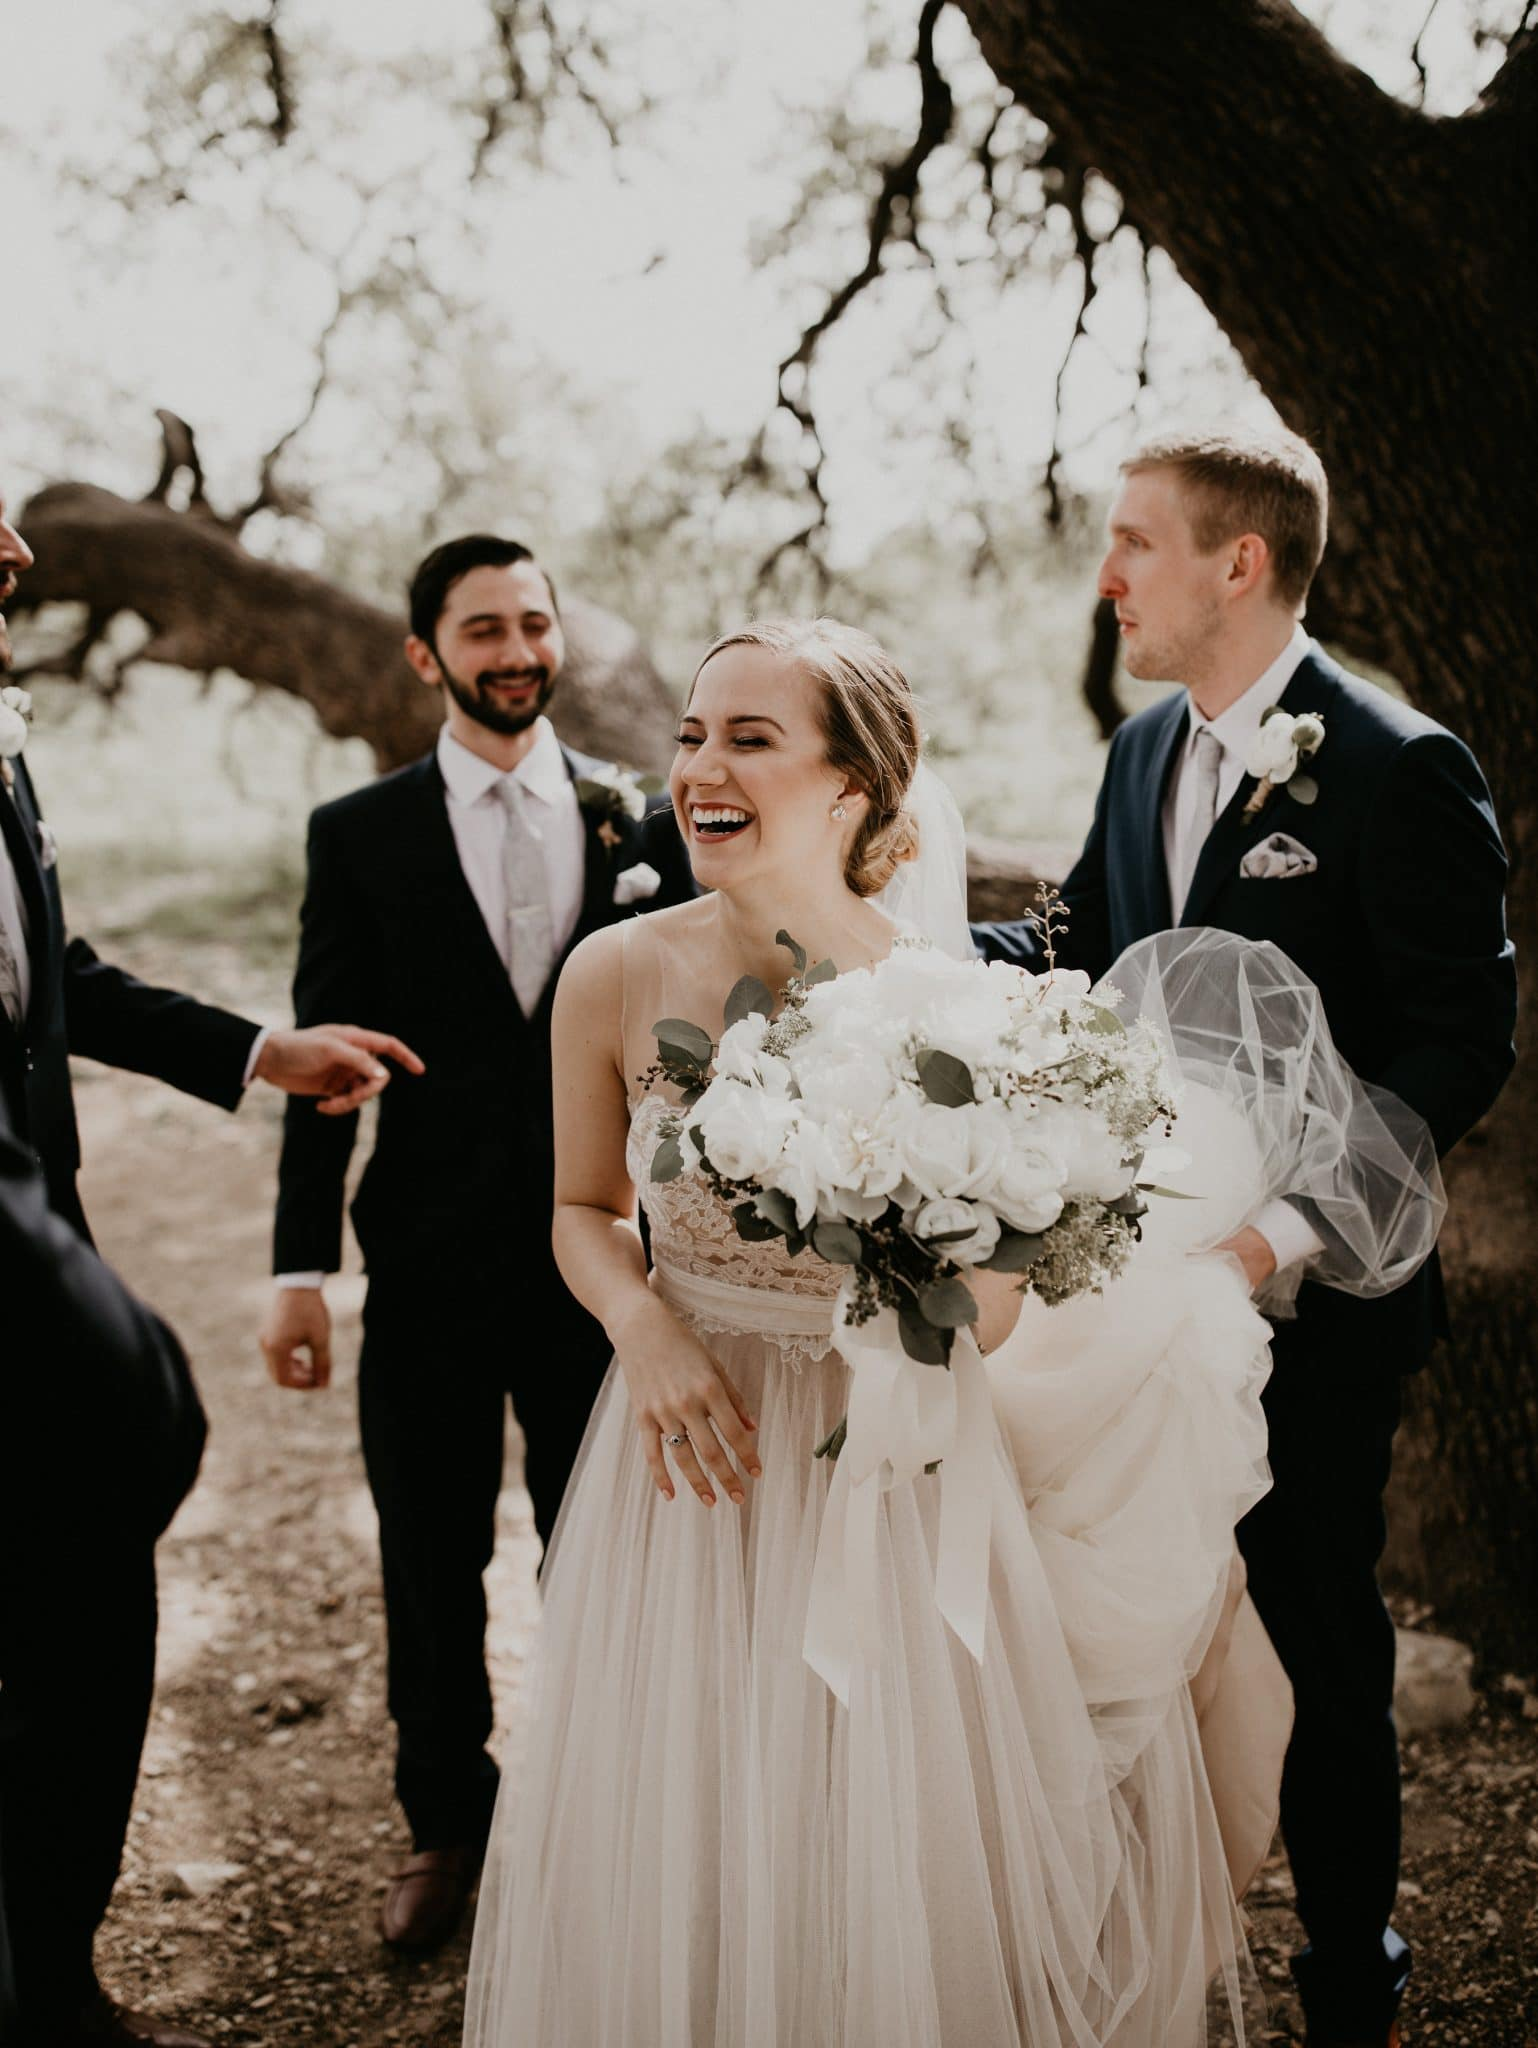 Bride holding her bouquet and laughing in front of a tree with the groom holding the train of her dress and the groomsmen around them at the Brodie Homestead in Sunset Valley, Texas. Photograph by Austin, Texas wedding photographer Nikk Nguyen.